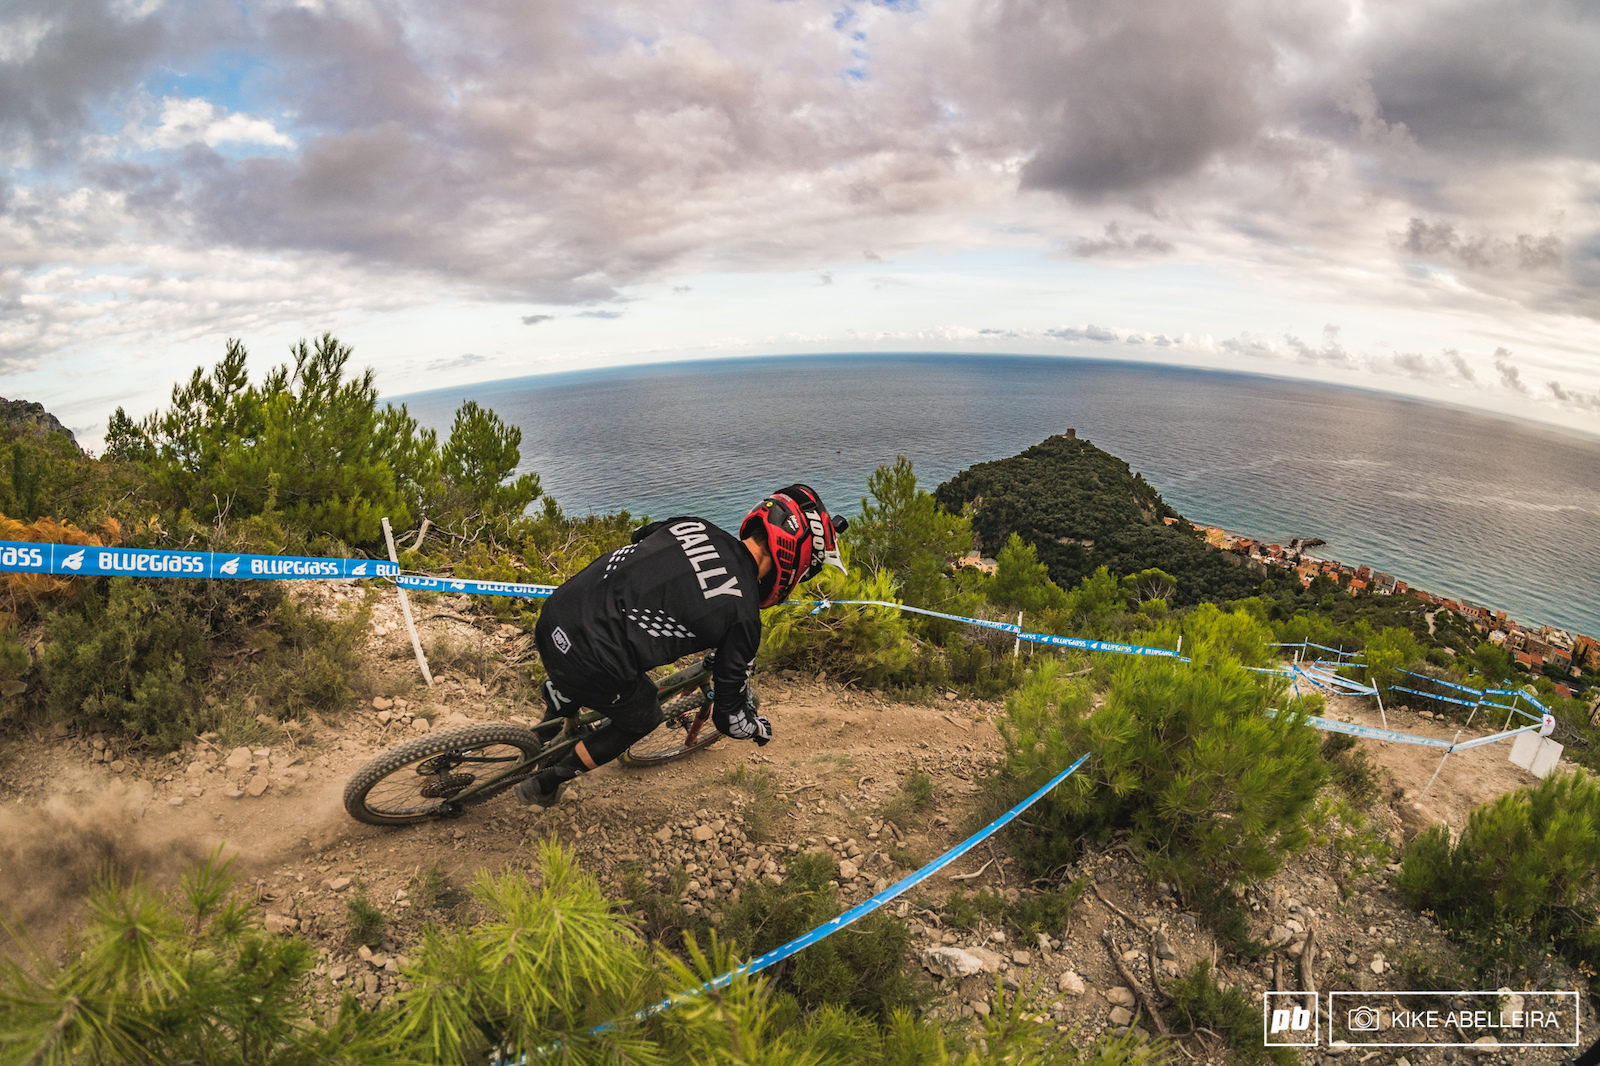 TON Finale ligure 2019 Adrien Dailly reserve rider for France is joining the industry race for Lapierre team.